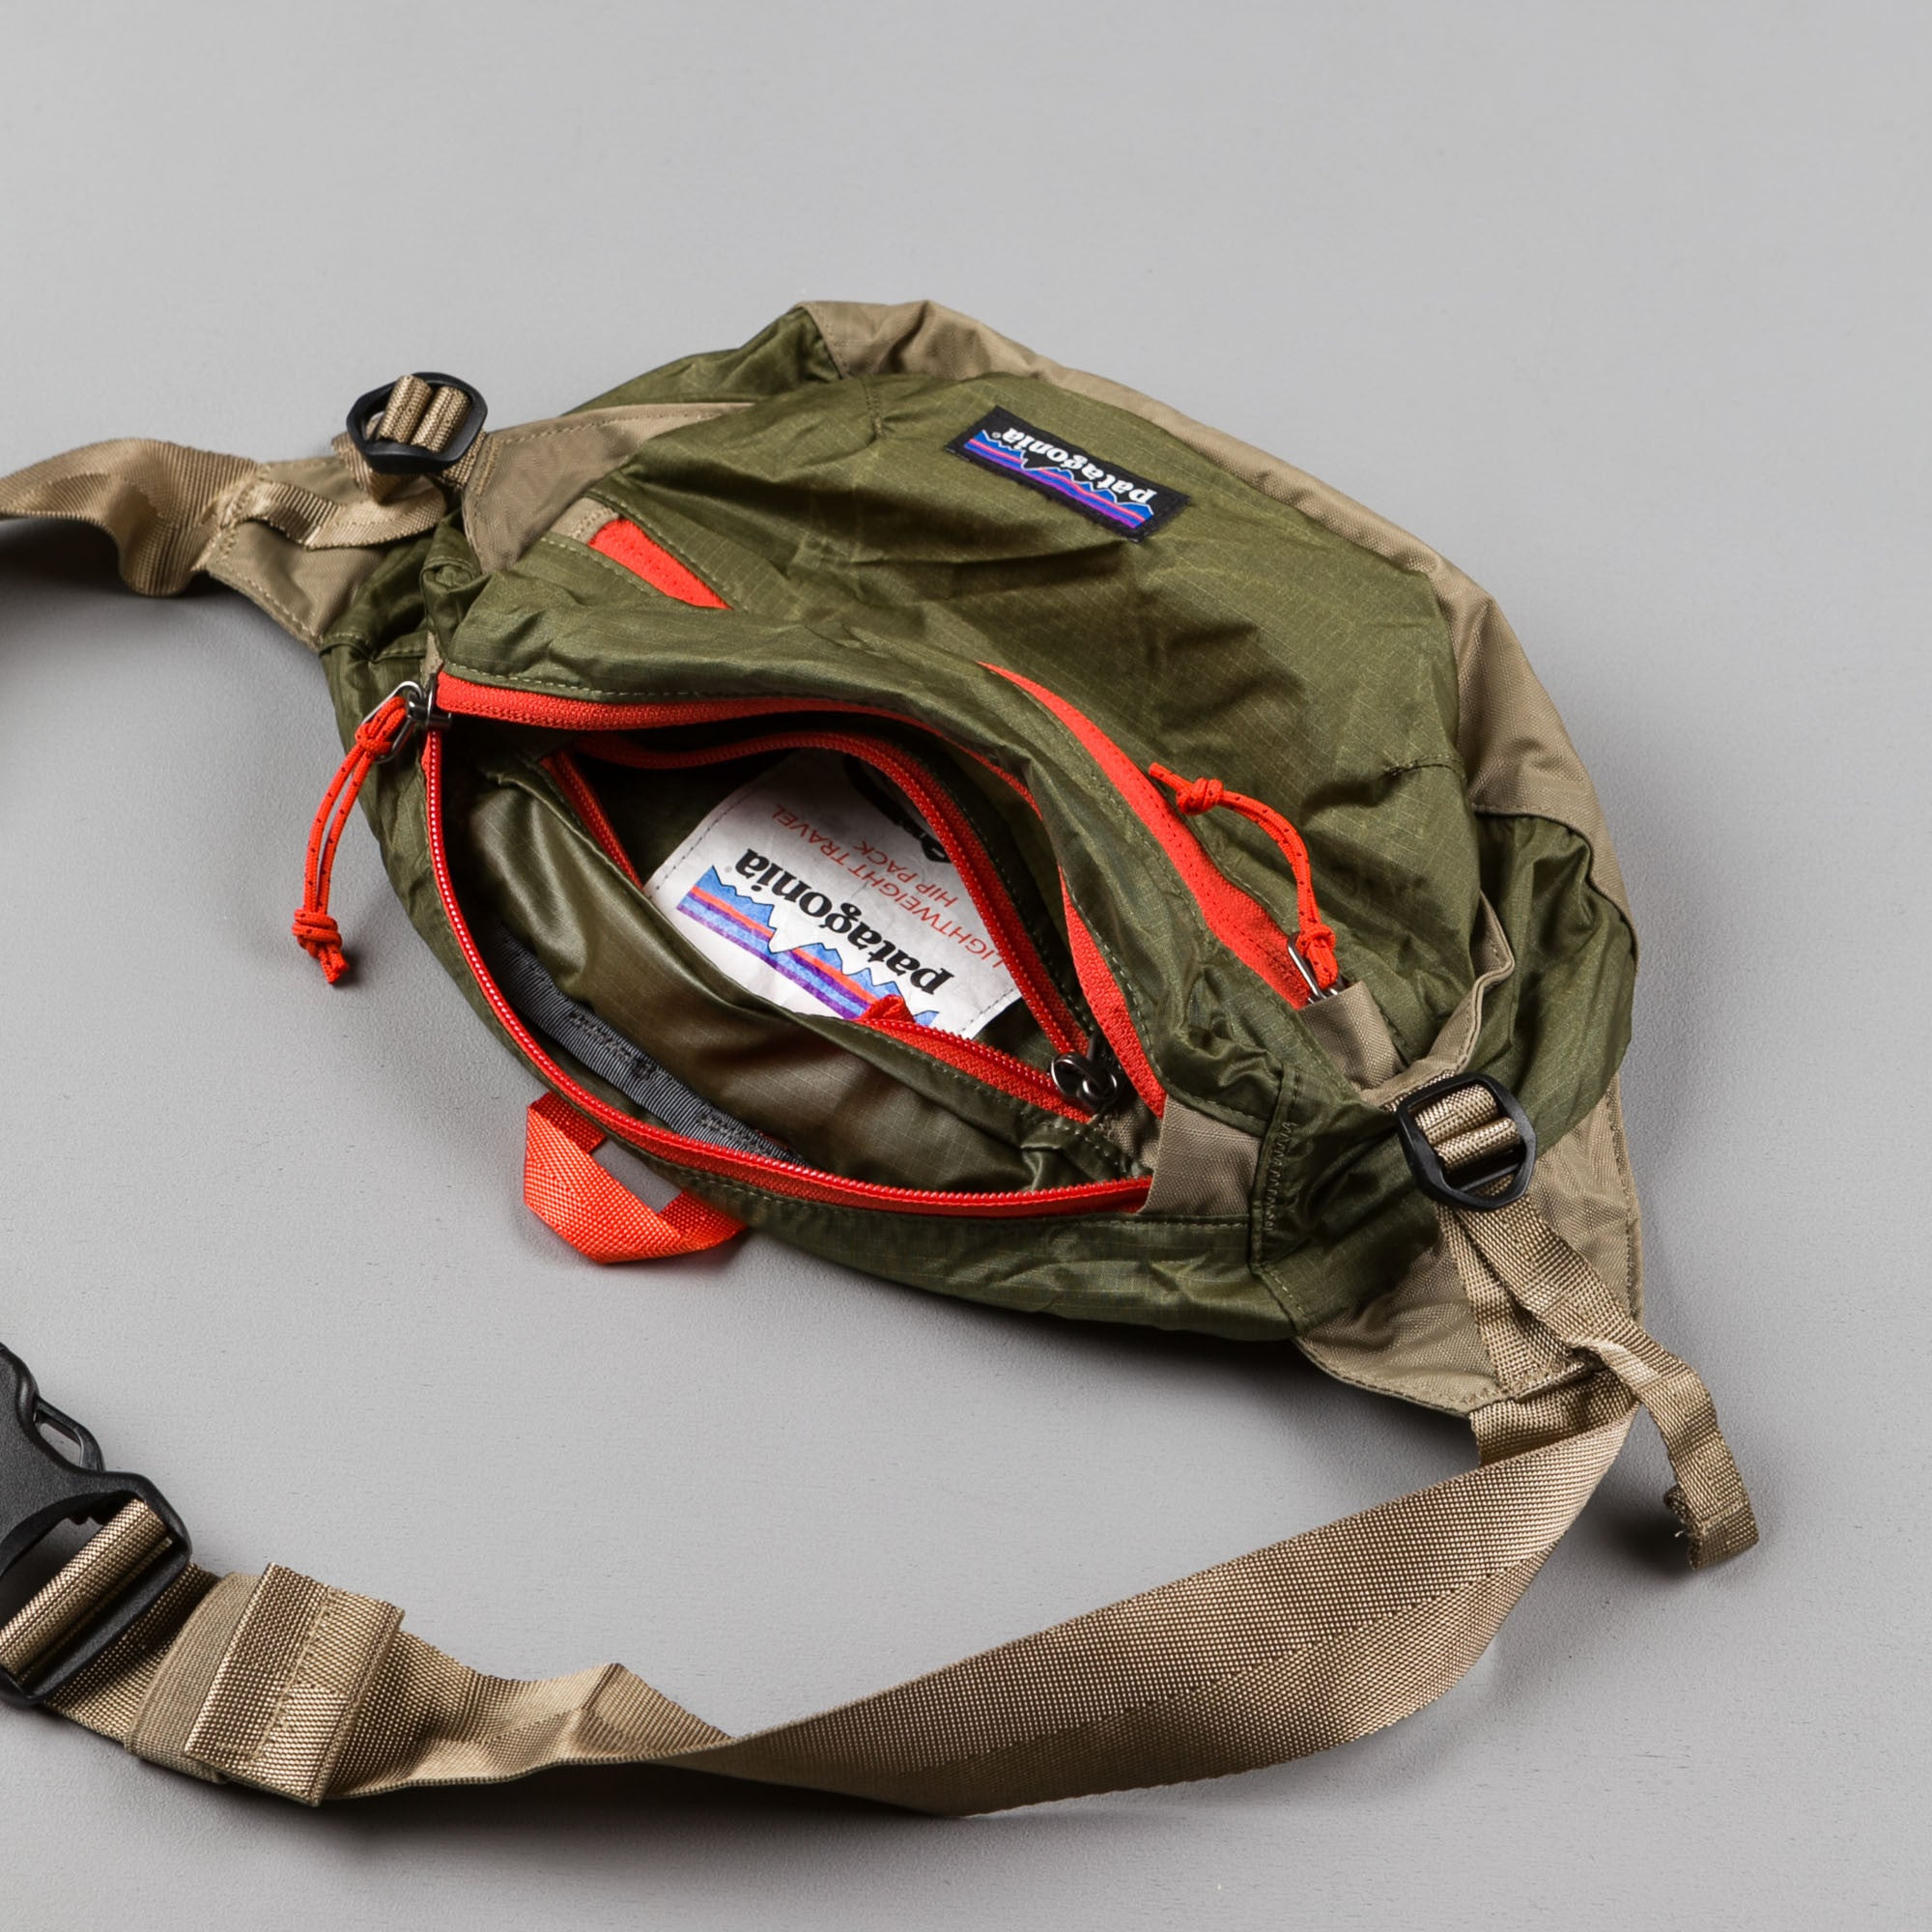 Patagonia Lightweight Travel Hip Pack - Fatigue Green